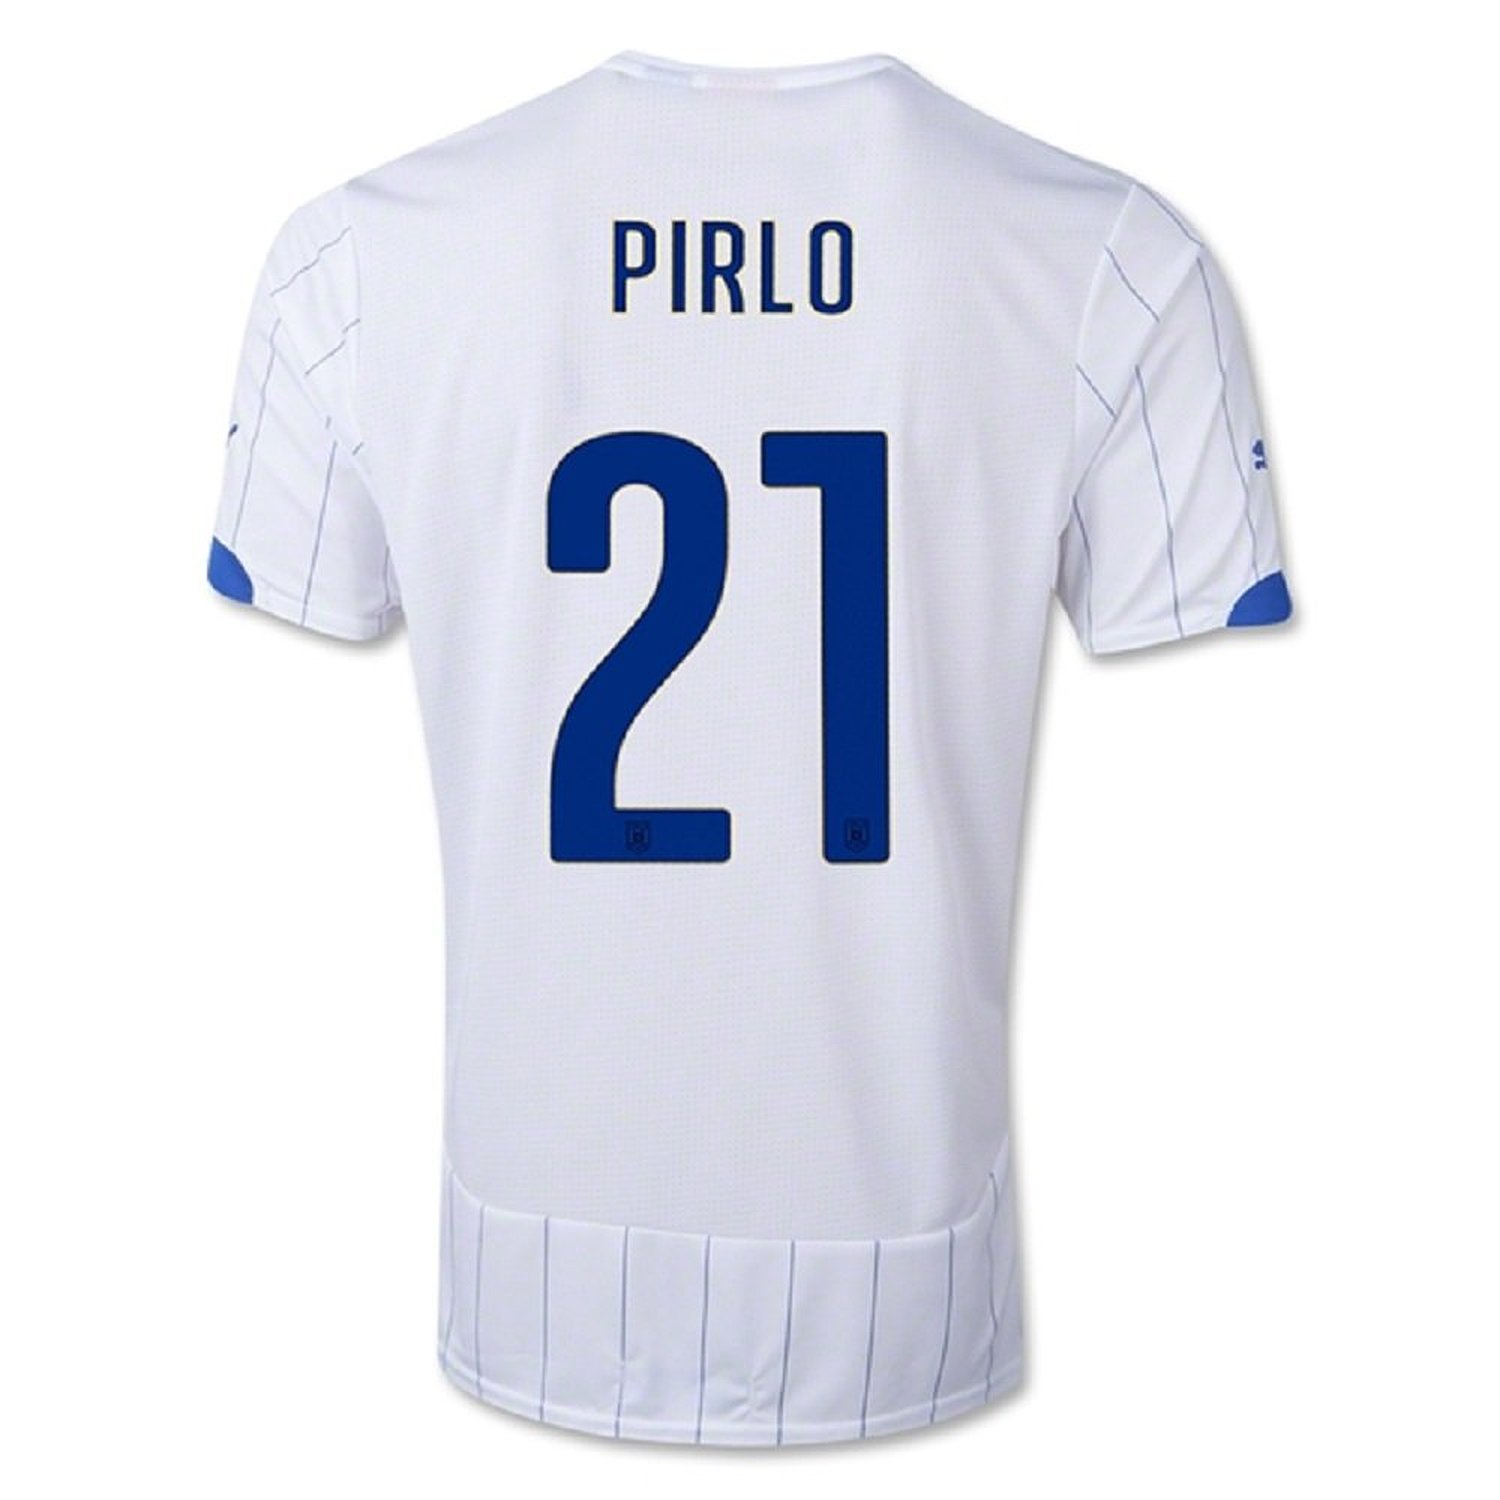 9b1e11bf8 Get Quotations · Puma Pirlo  21 Italy Away Jersey World Cup 2014 (Youth)